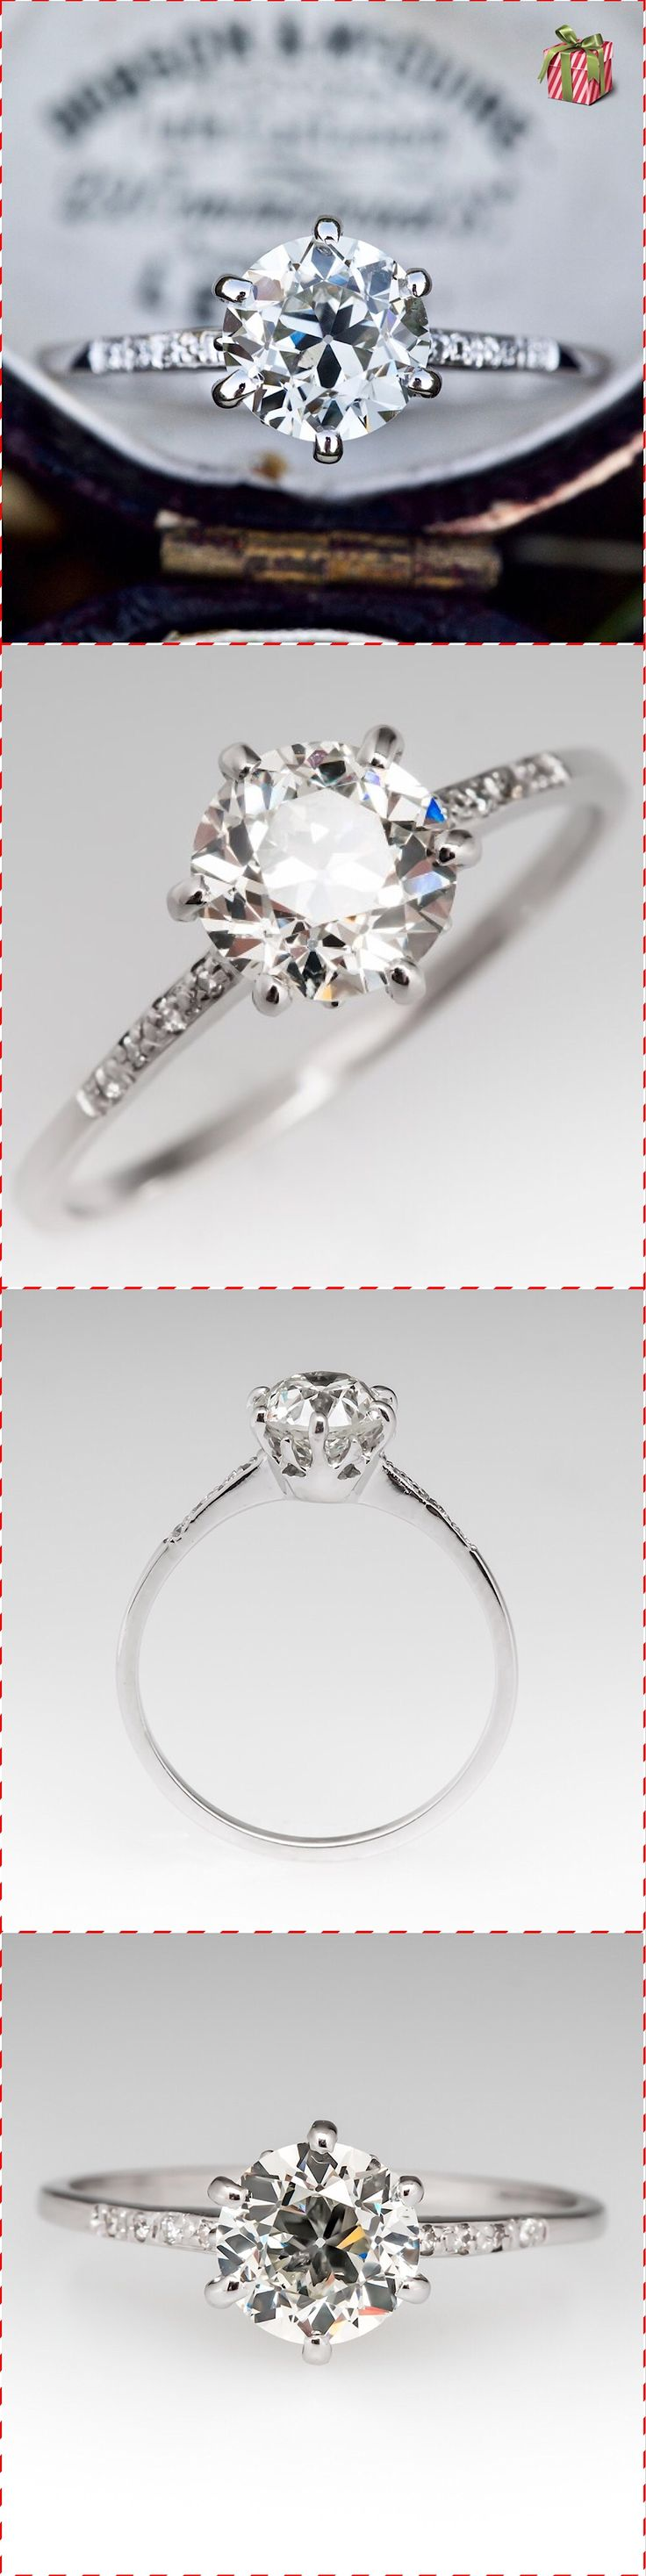 Old european cut elegant diamond solitaire ring in platinum and 18k - This Elegant Vintage Engagement Ring Is Crafted Of Platinum And Set With A 1 09 Carat Old European Cut Center Diamond With 4 Diamonds On Each Shoulder